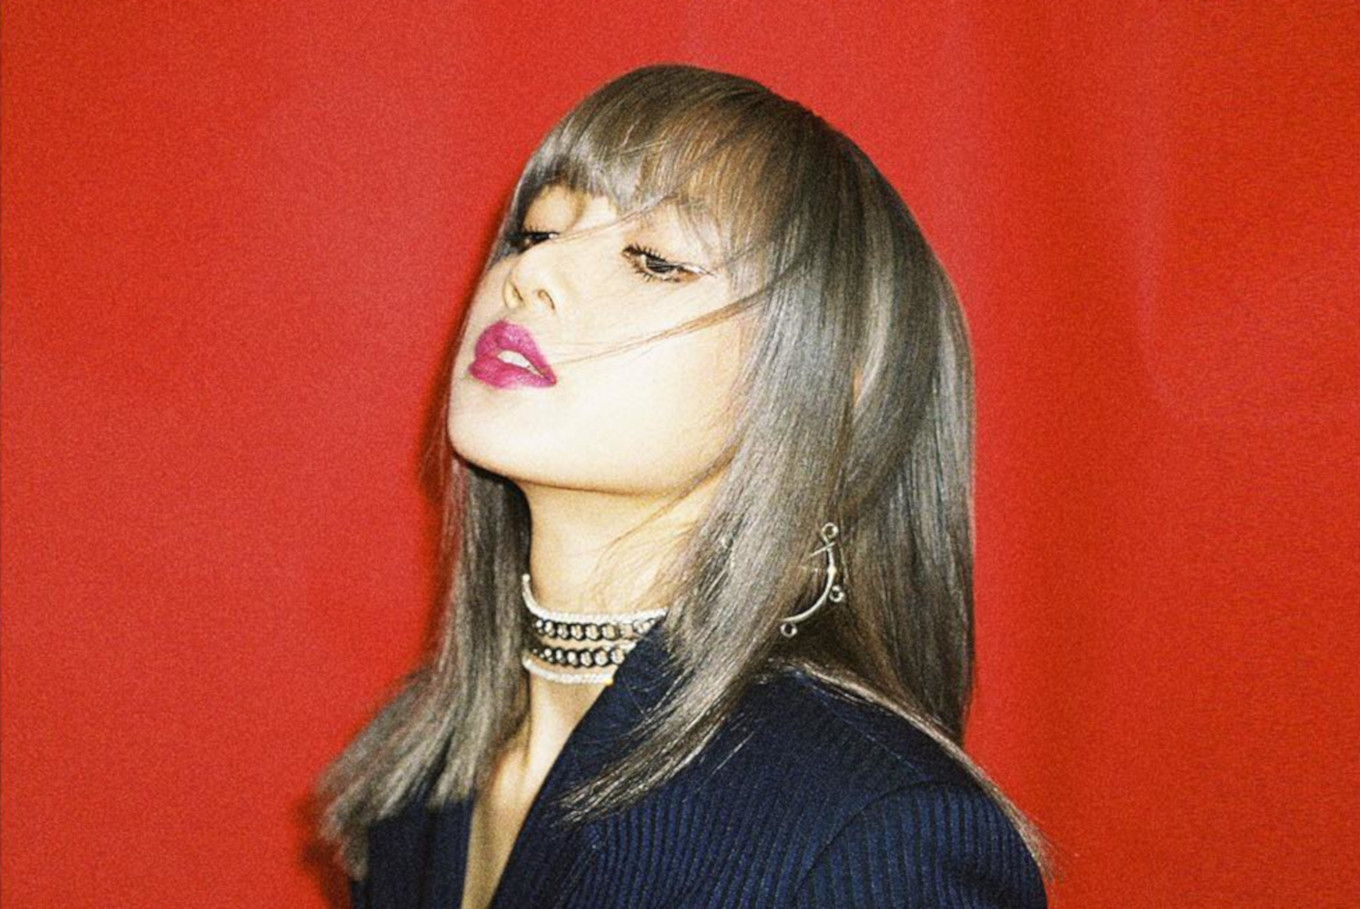 BLACKPINK's Lisa scammed 1 billion won by former manager